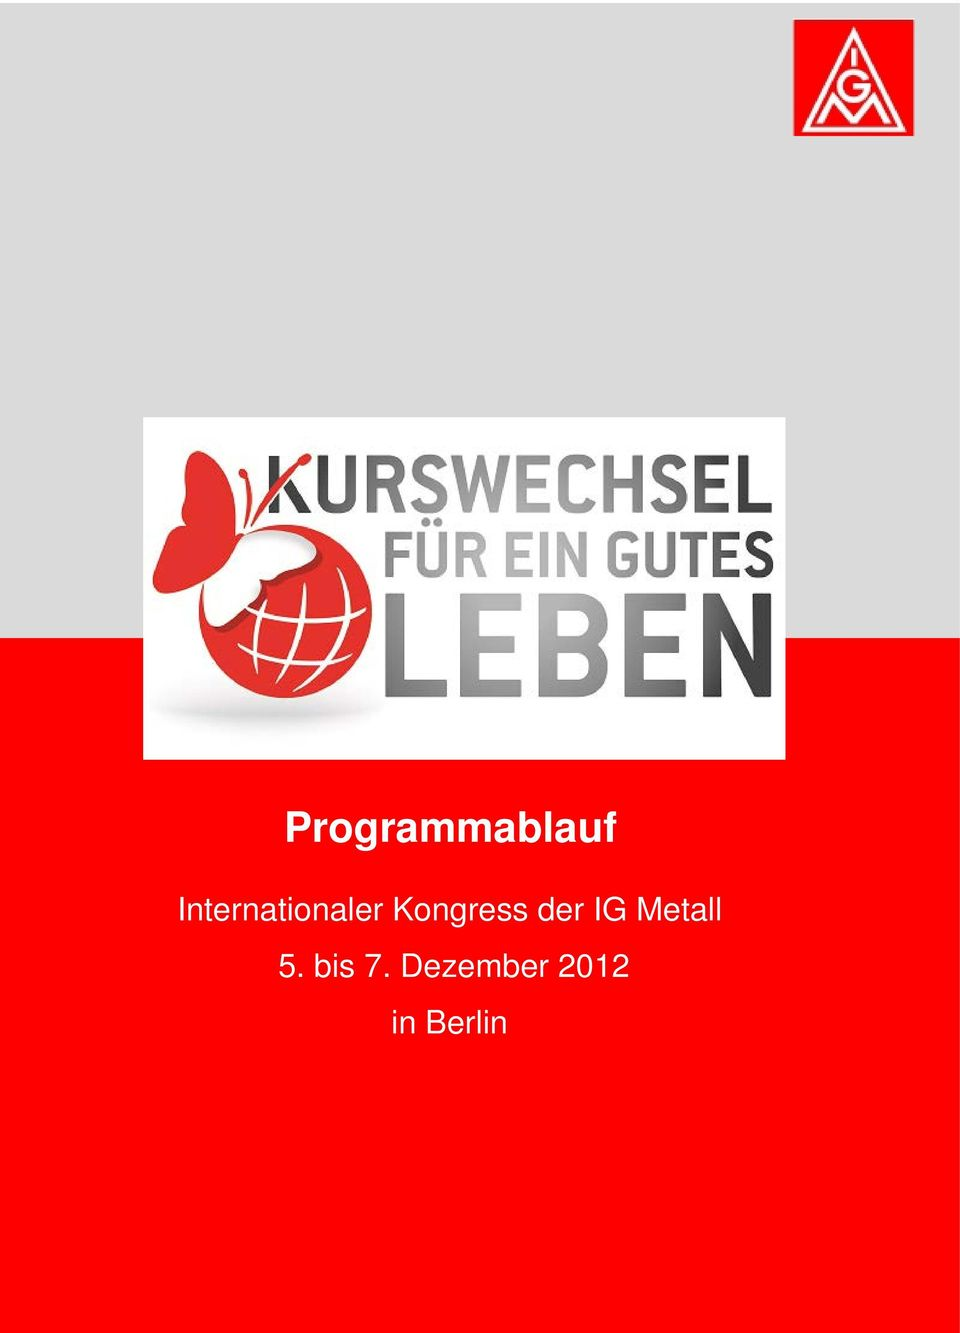 Kongress der IG